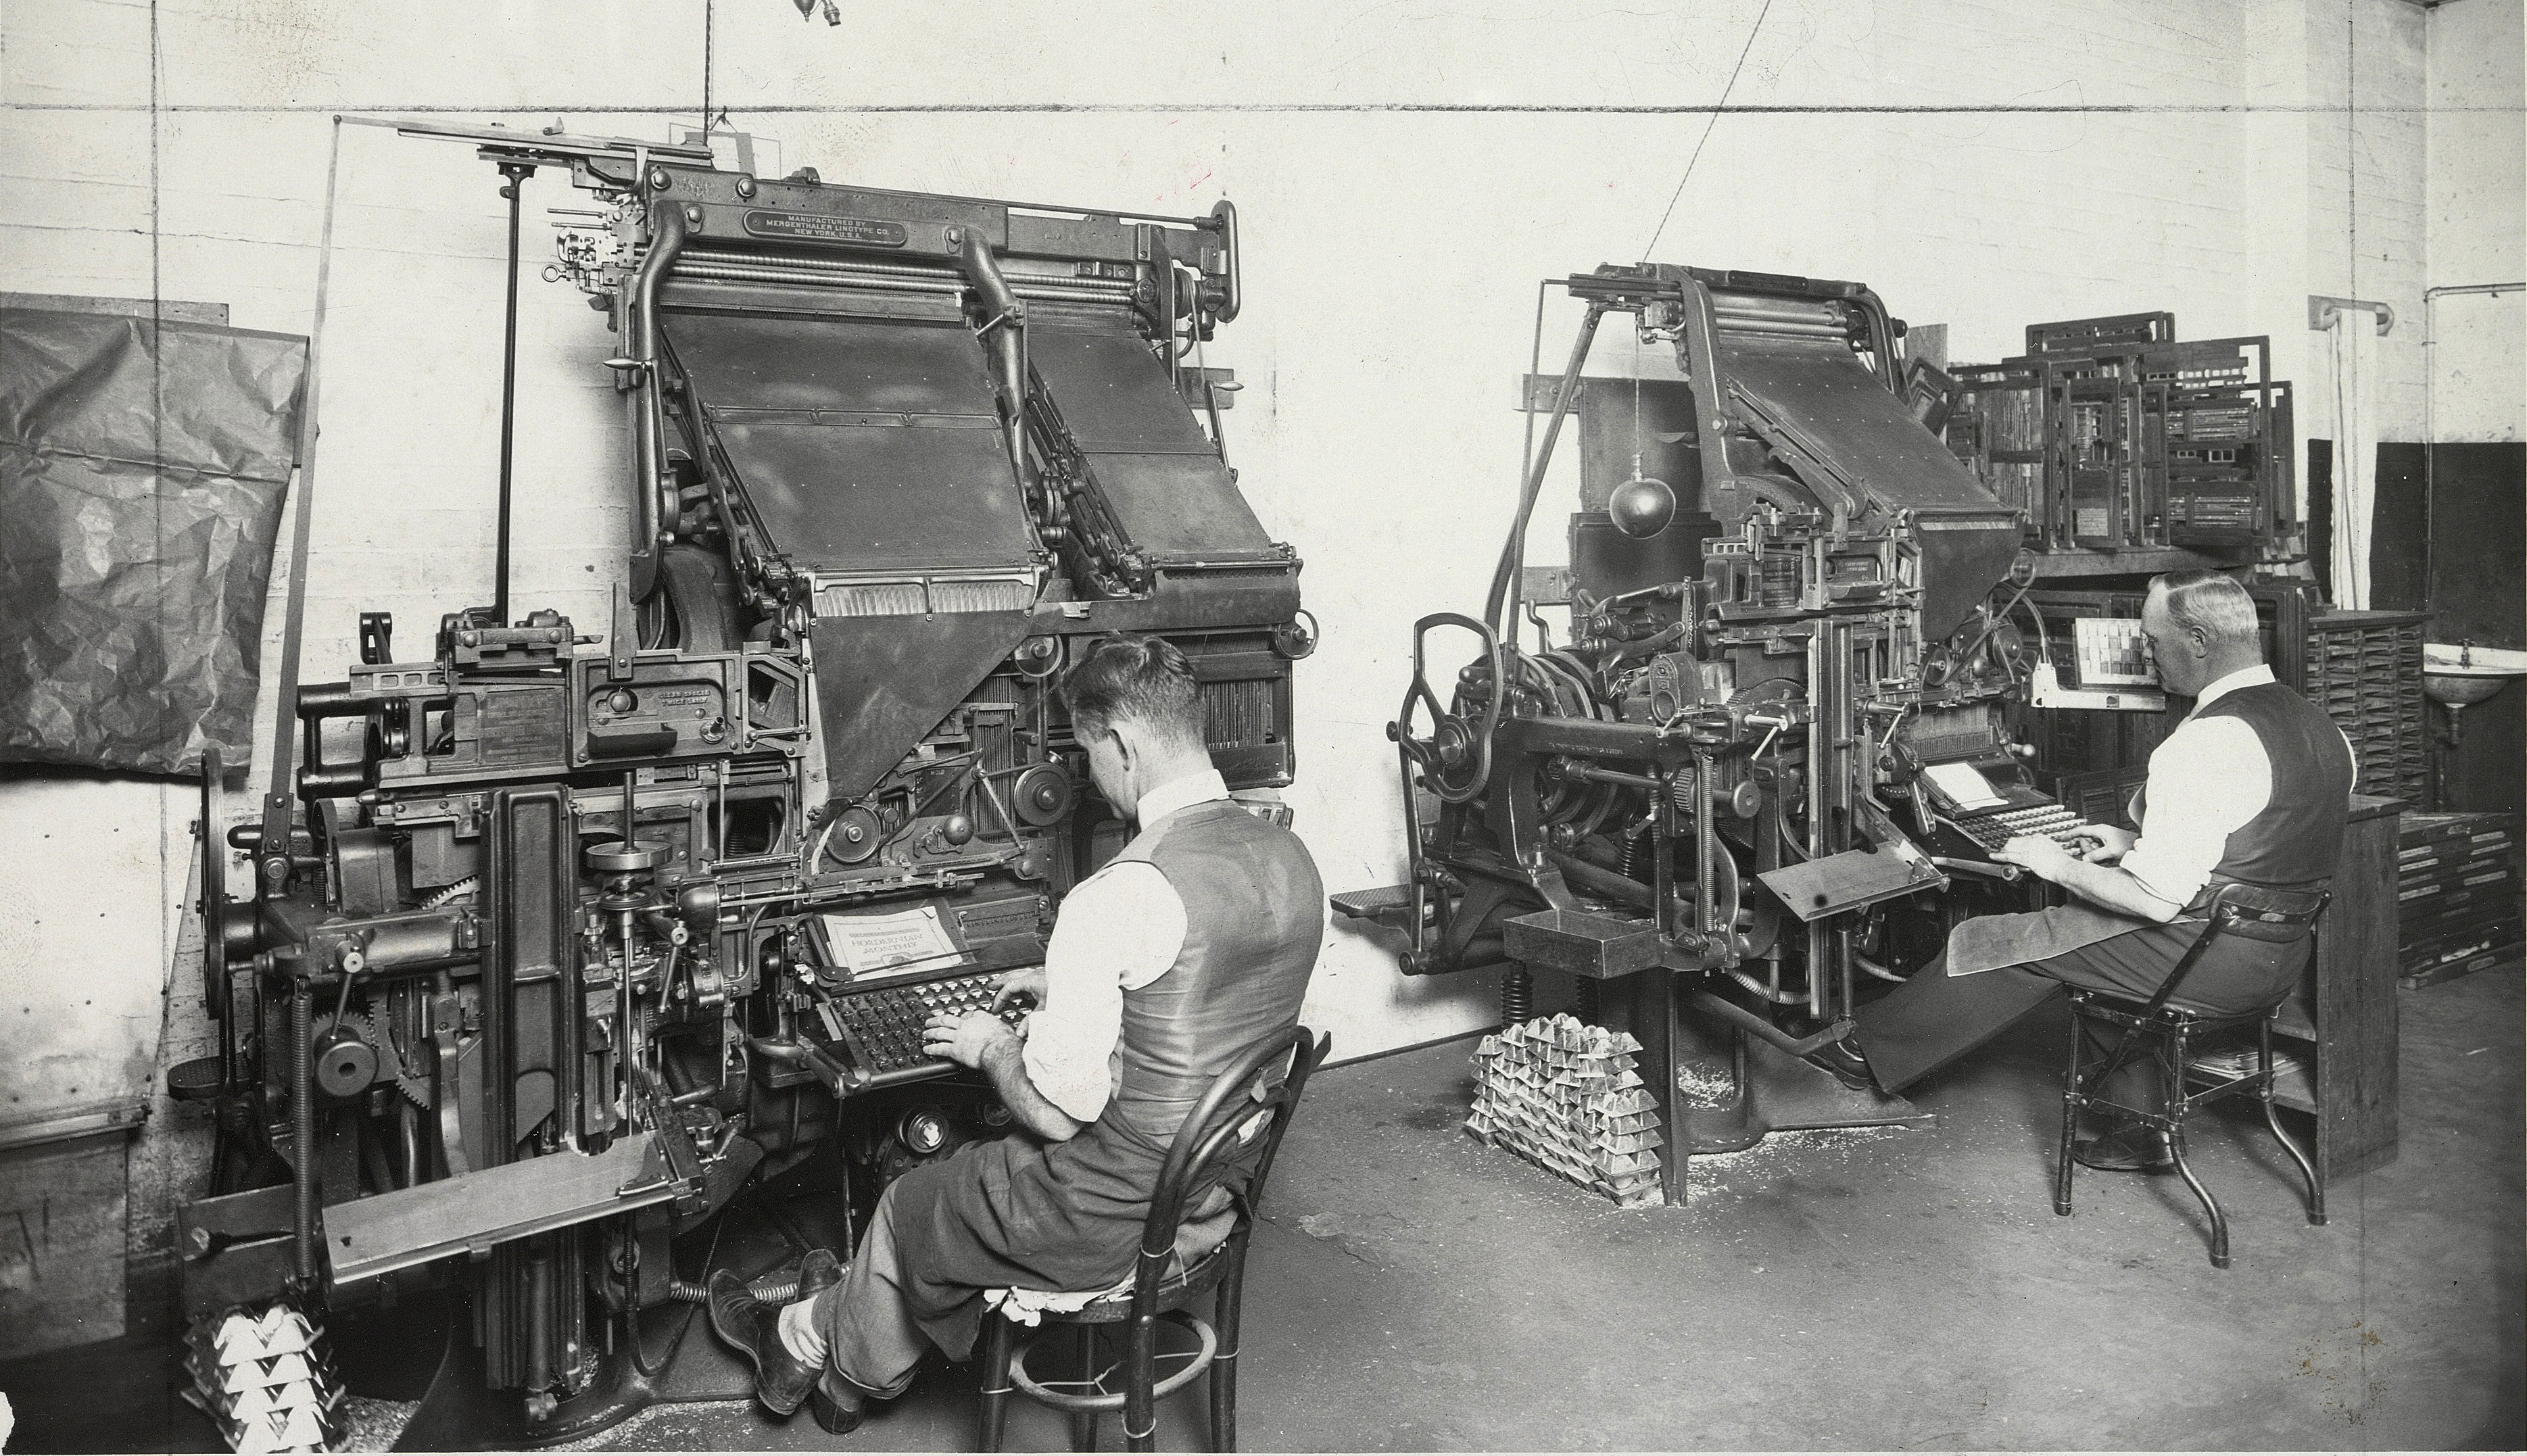 Linotype machines, Anthony Hordern and Sons department store, c. 1935